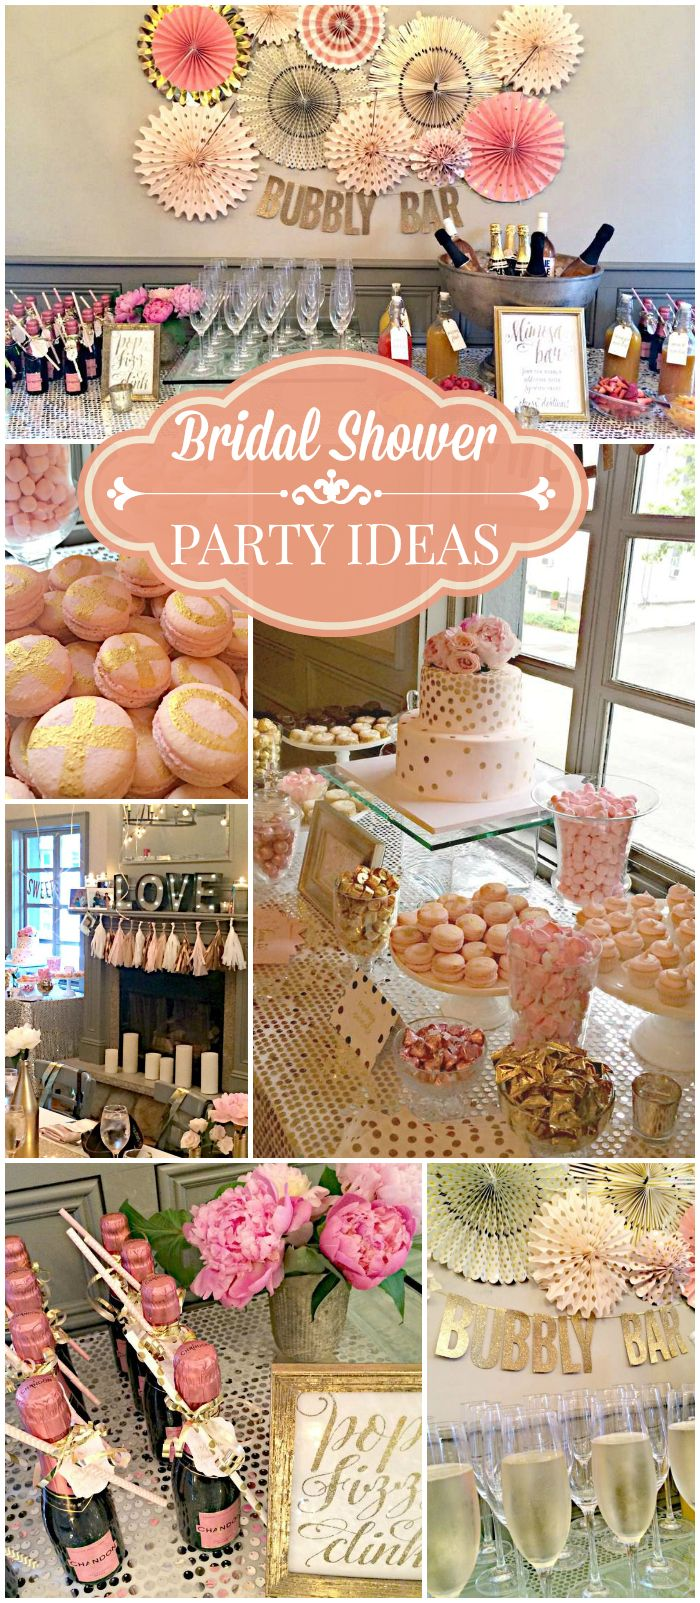 Kitchen Tea Themes 17 Best Ideas About Bridal Showers On Pinterest Bridal Party